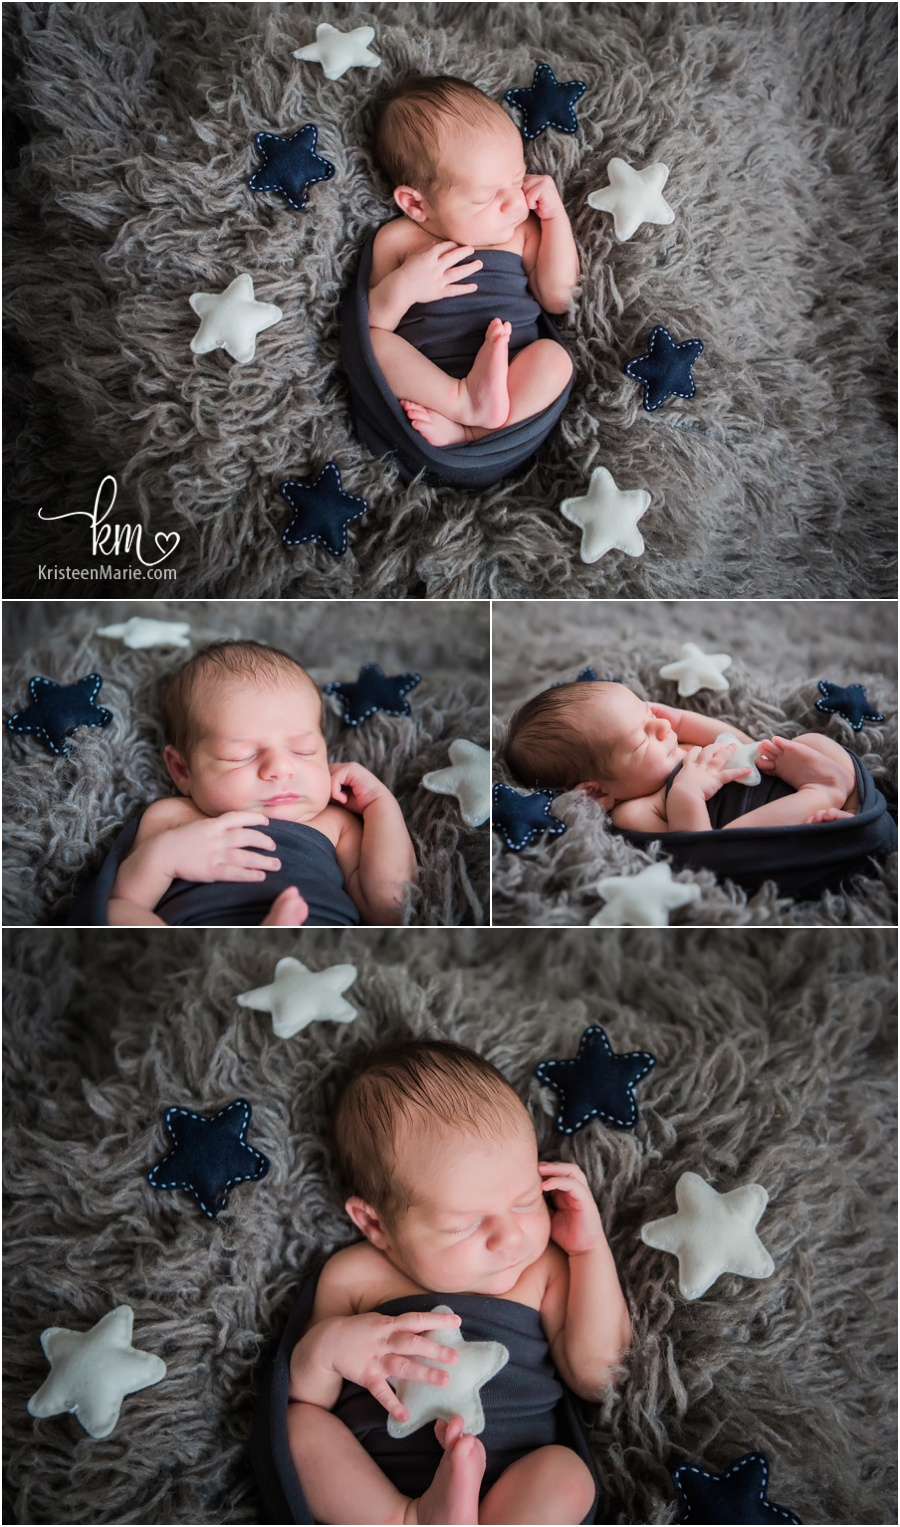 newborn baby with stars - star themed newborn announcement idea